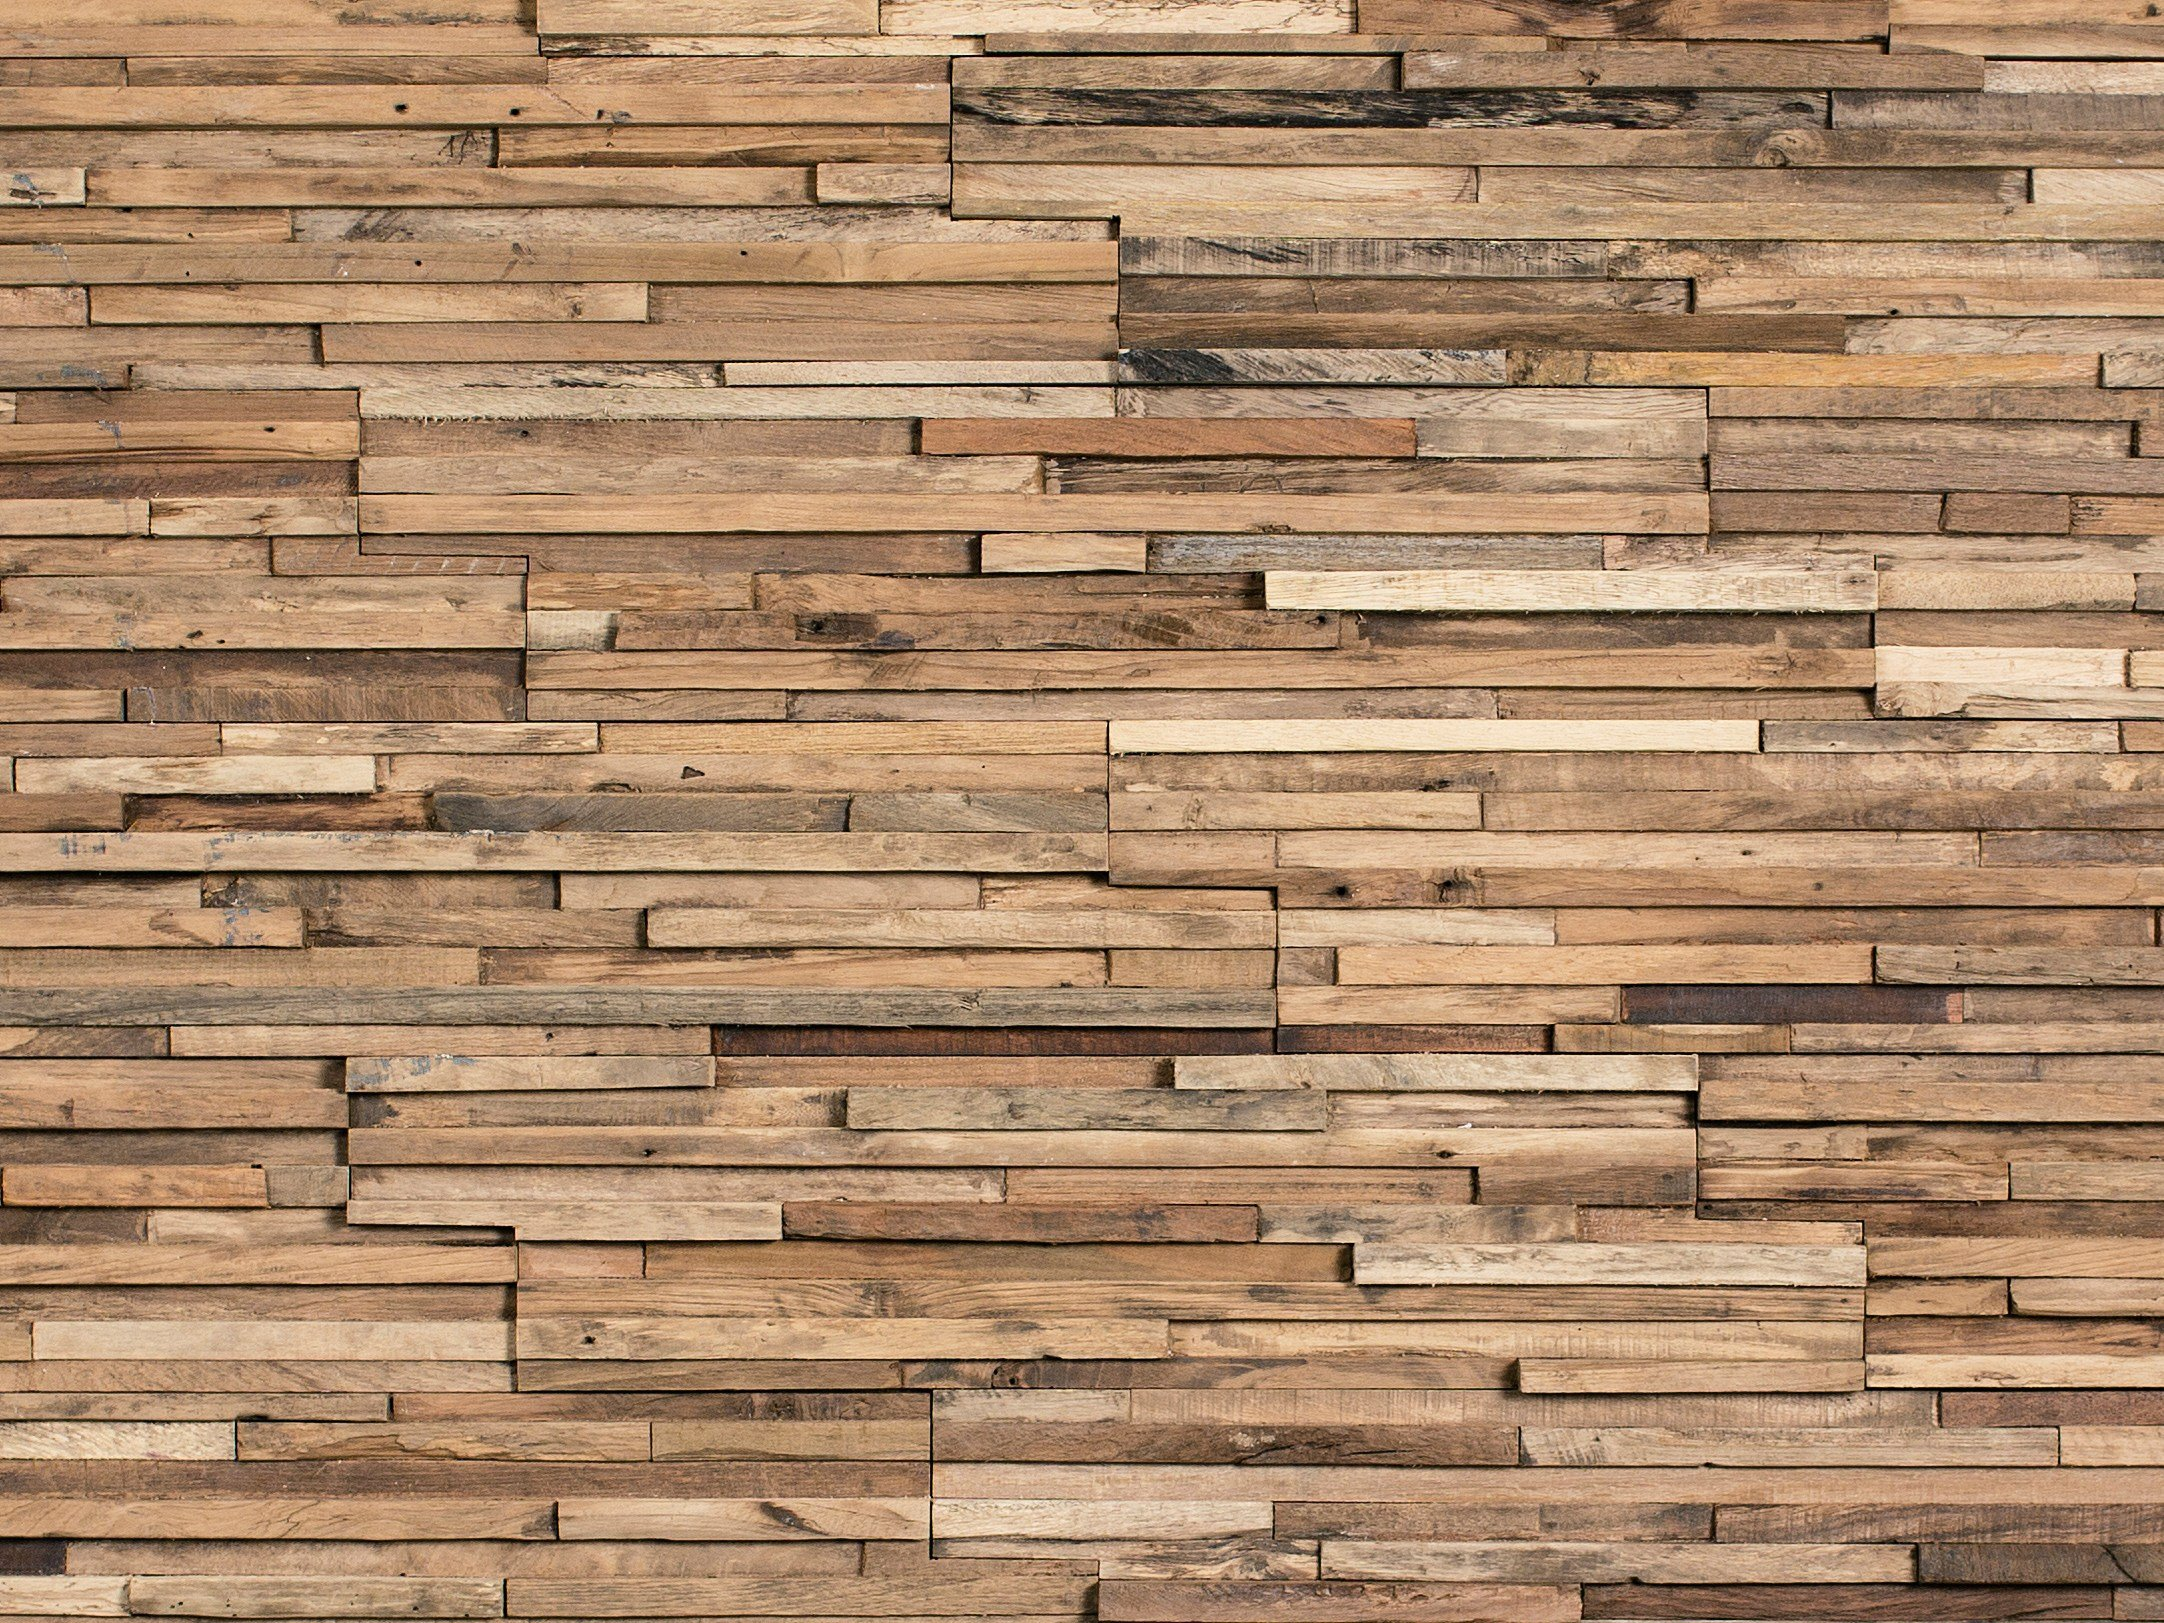 Wooden 3d Wall Cladding For Interior Parker By Wonderwall Studios